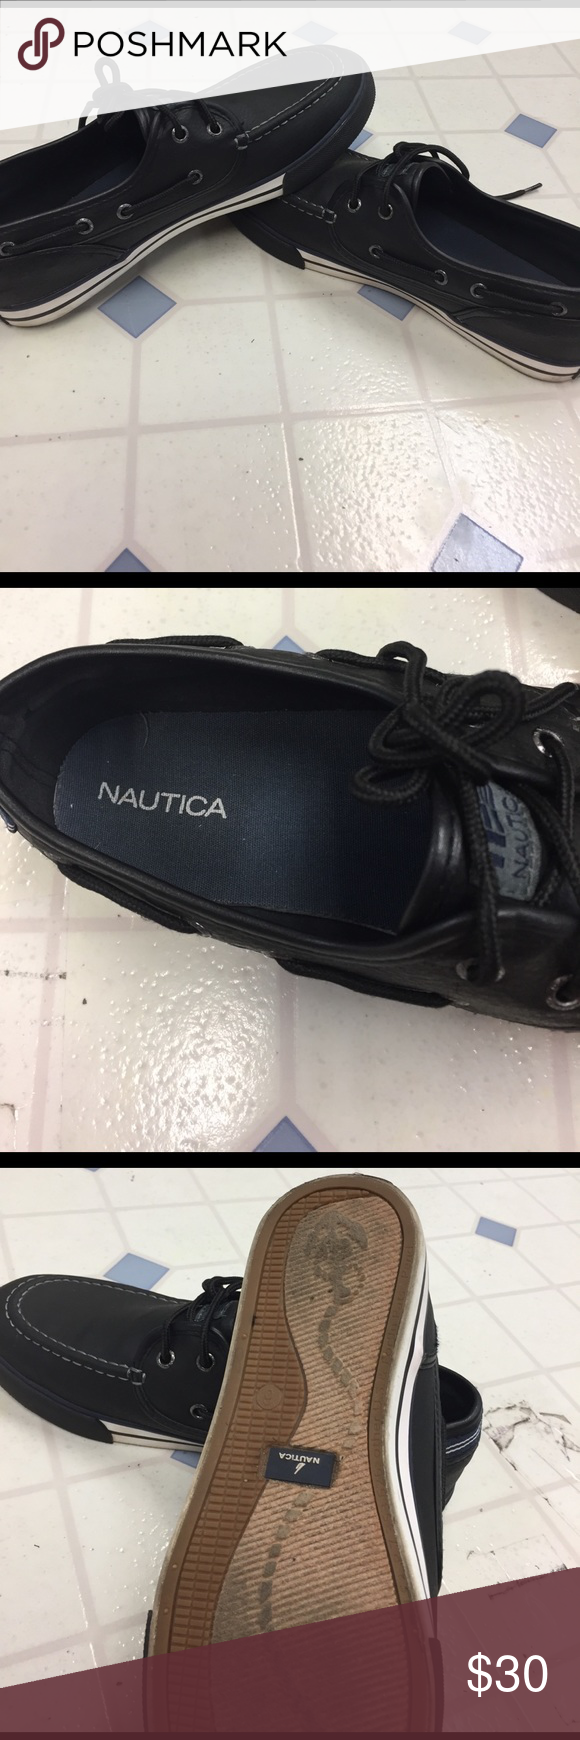 b58634ad908 Shoes Nautica The shoes are semi-new NAUTICA Shoes Flats   Loafers